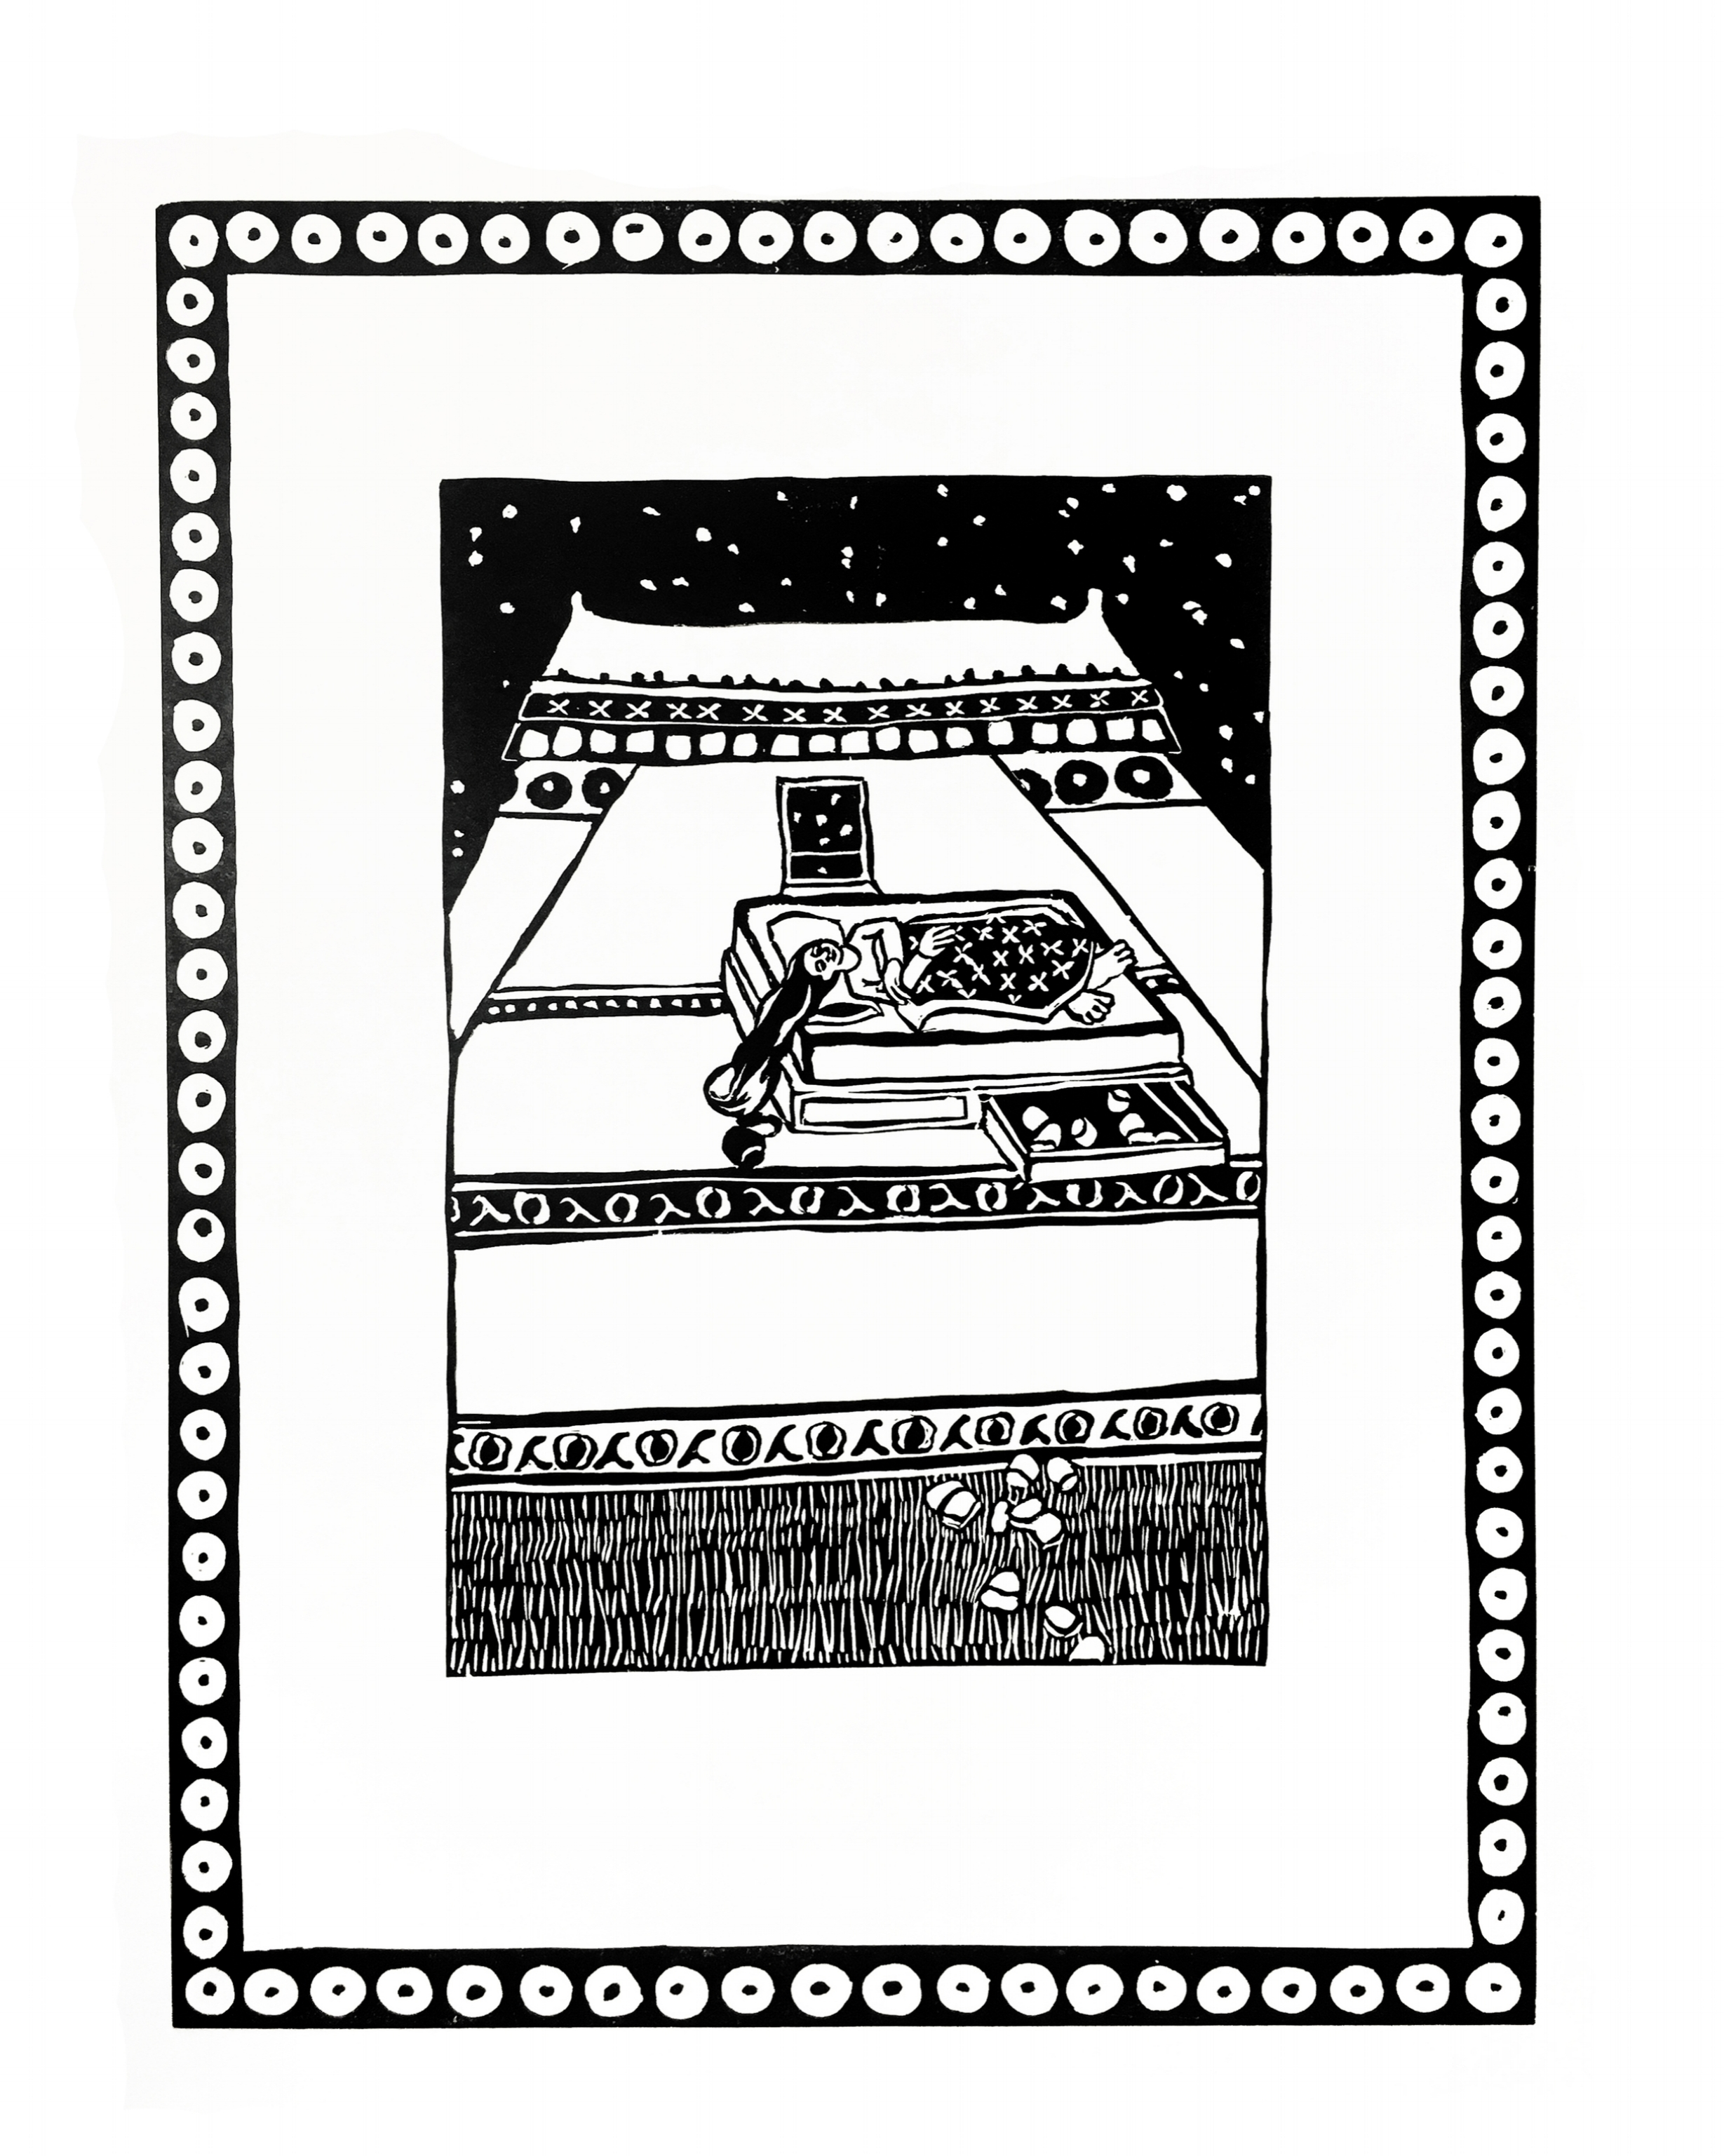 Falling teeth in a growing house  woodblock print  22 x 15 inches